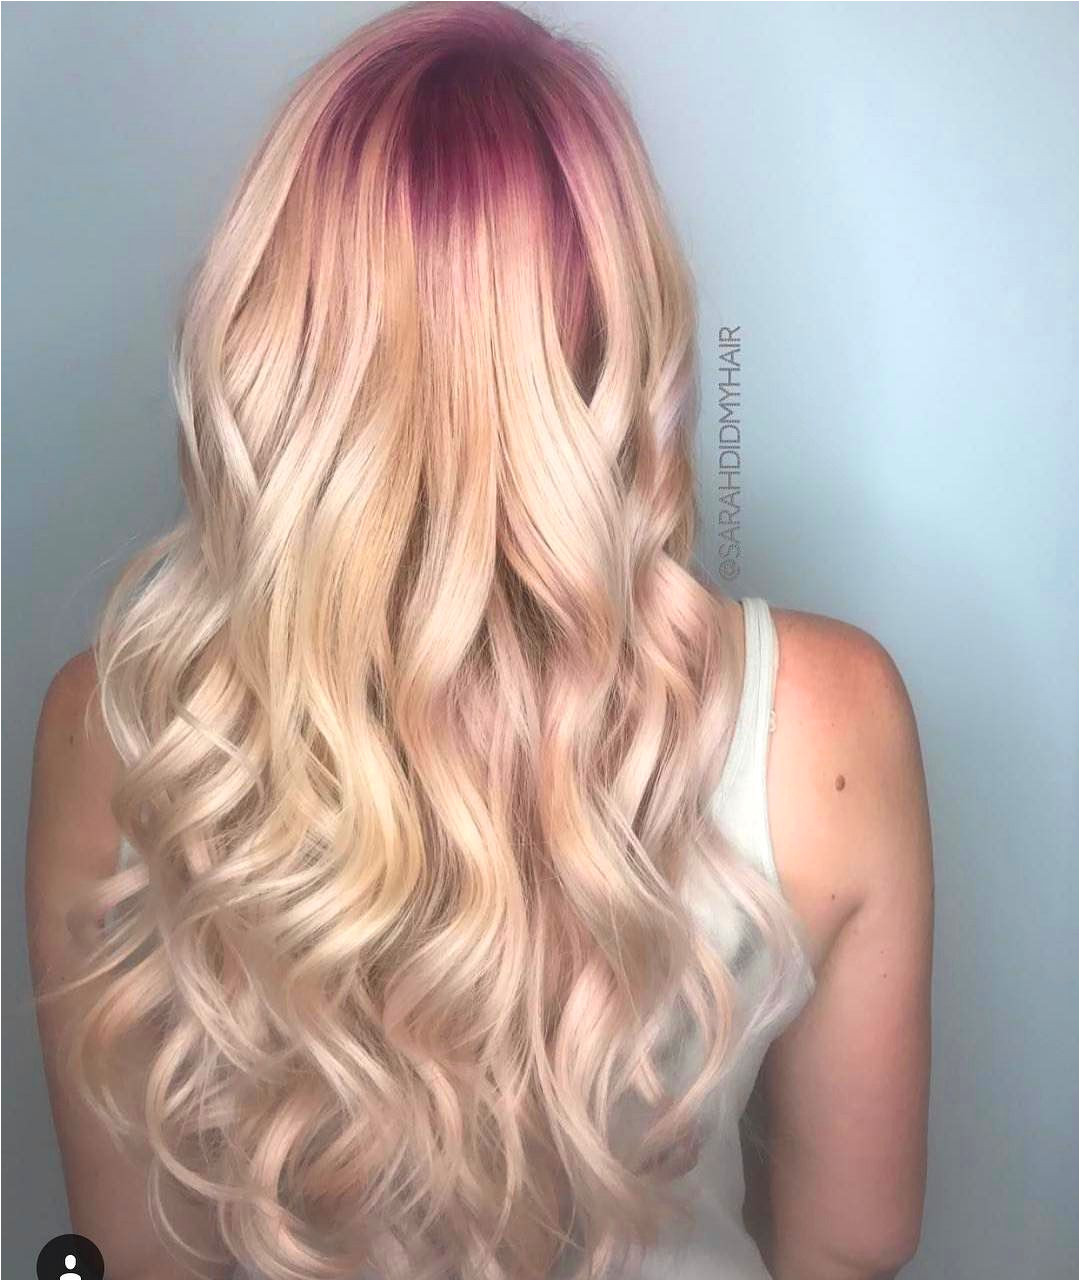 40 Trendy Long Hairstyles for Women to Try in 2018